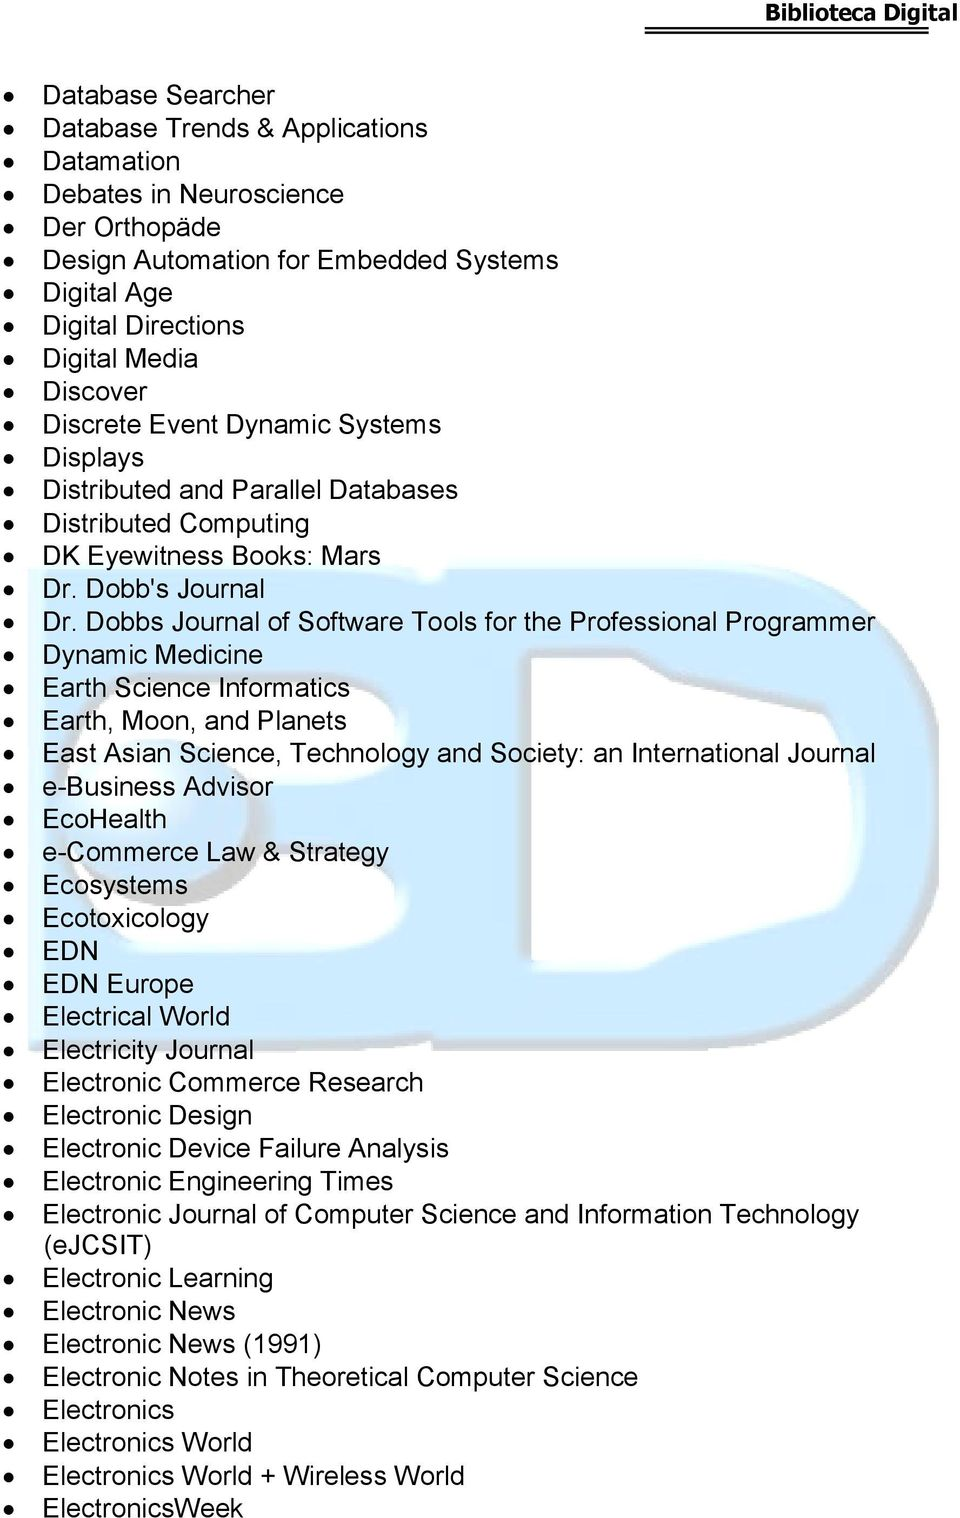 Dobbs Journal of Software Tools for the Professional Programmer Dynamic Medicine Earth Science Informatics Earth, Moon, and Planets East Asian Science, Technology and Society: an International